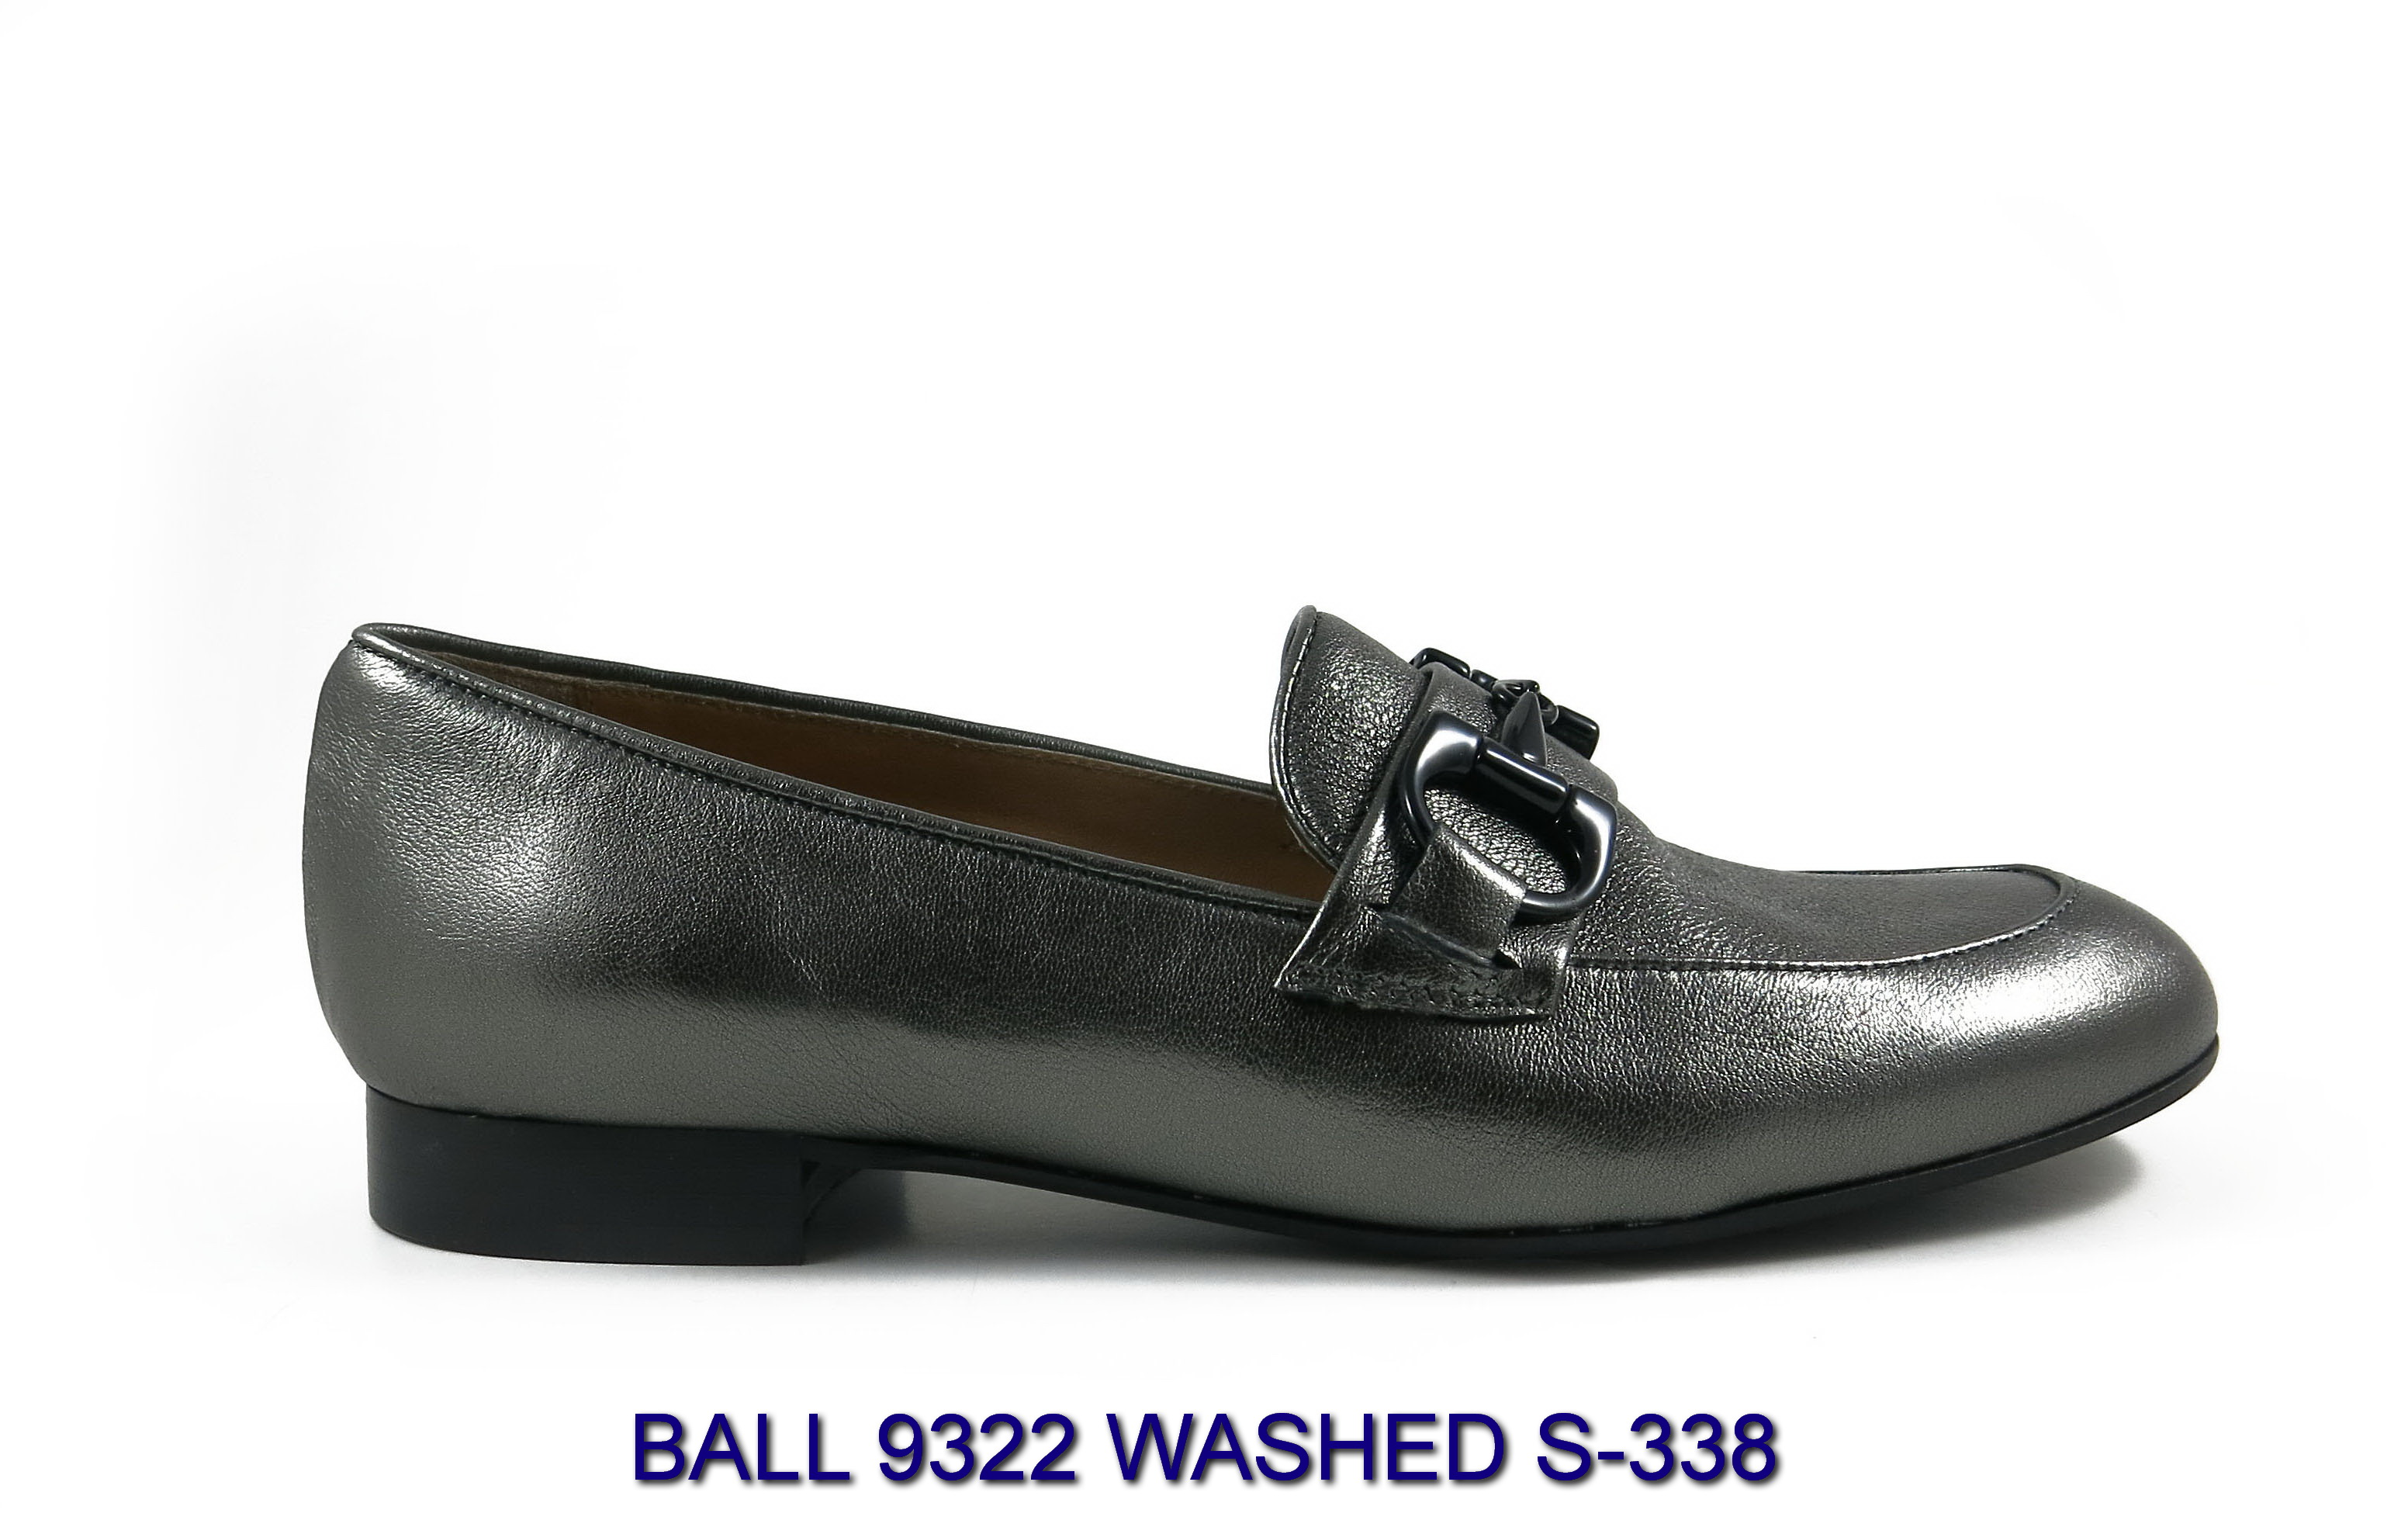 BALL-9322-WASHED-S-338